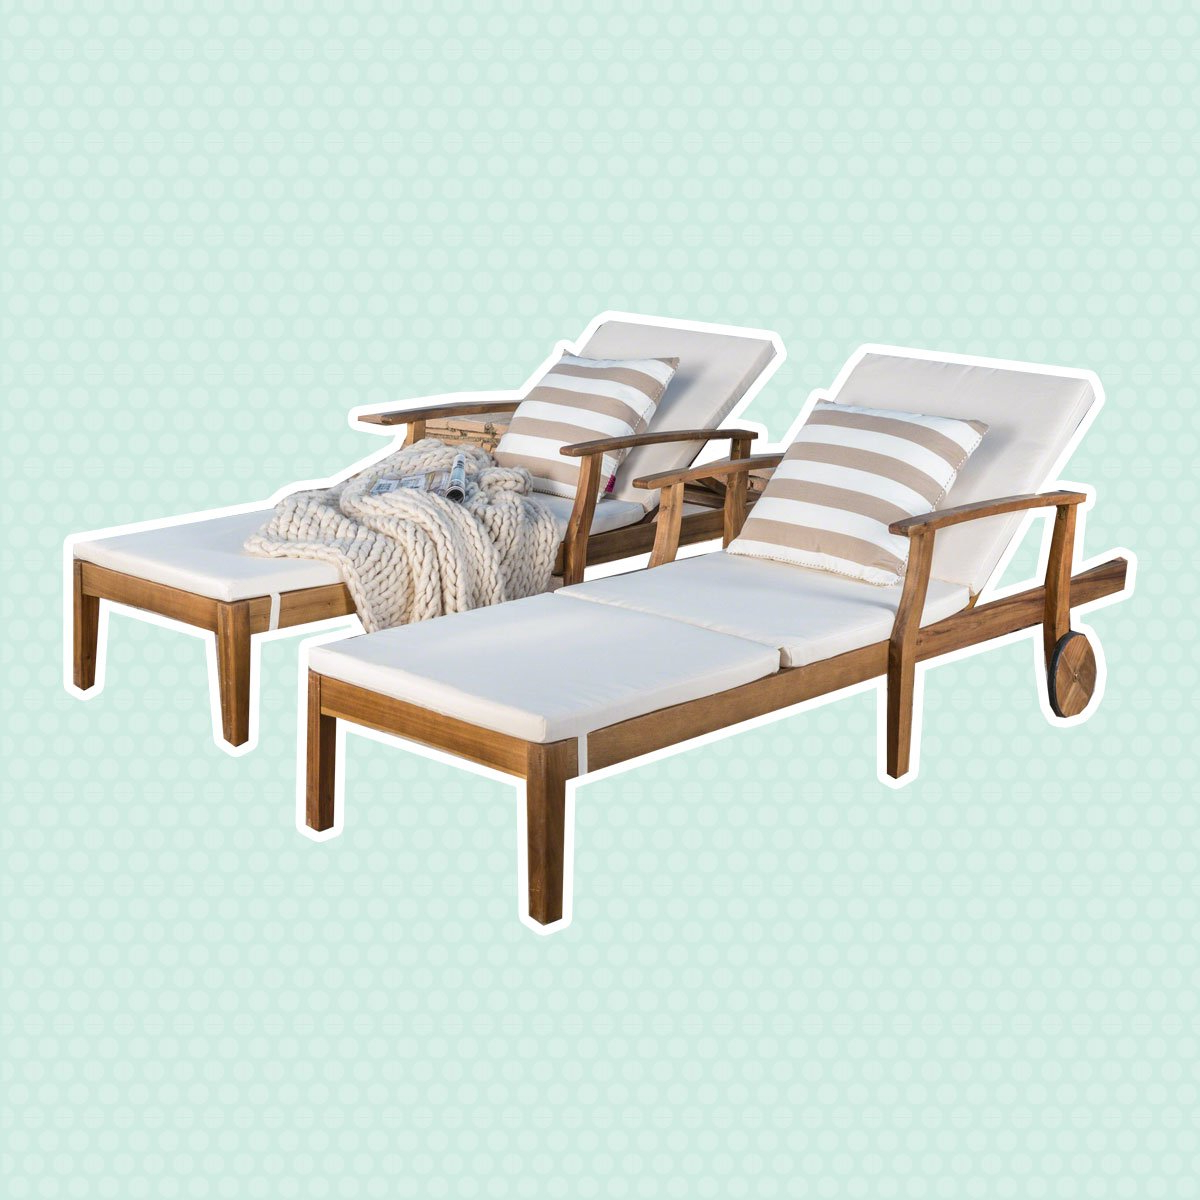 Taste Of Home For Perla Outdoor Acacia Wood Chaise Lounge With Cushion (View 22 of 25)